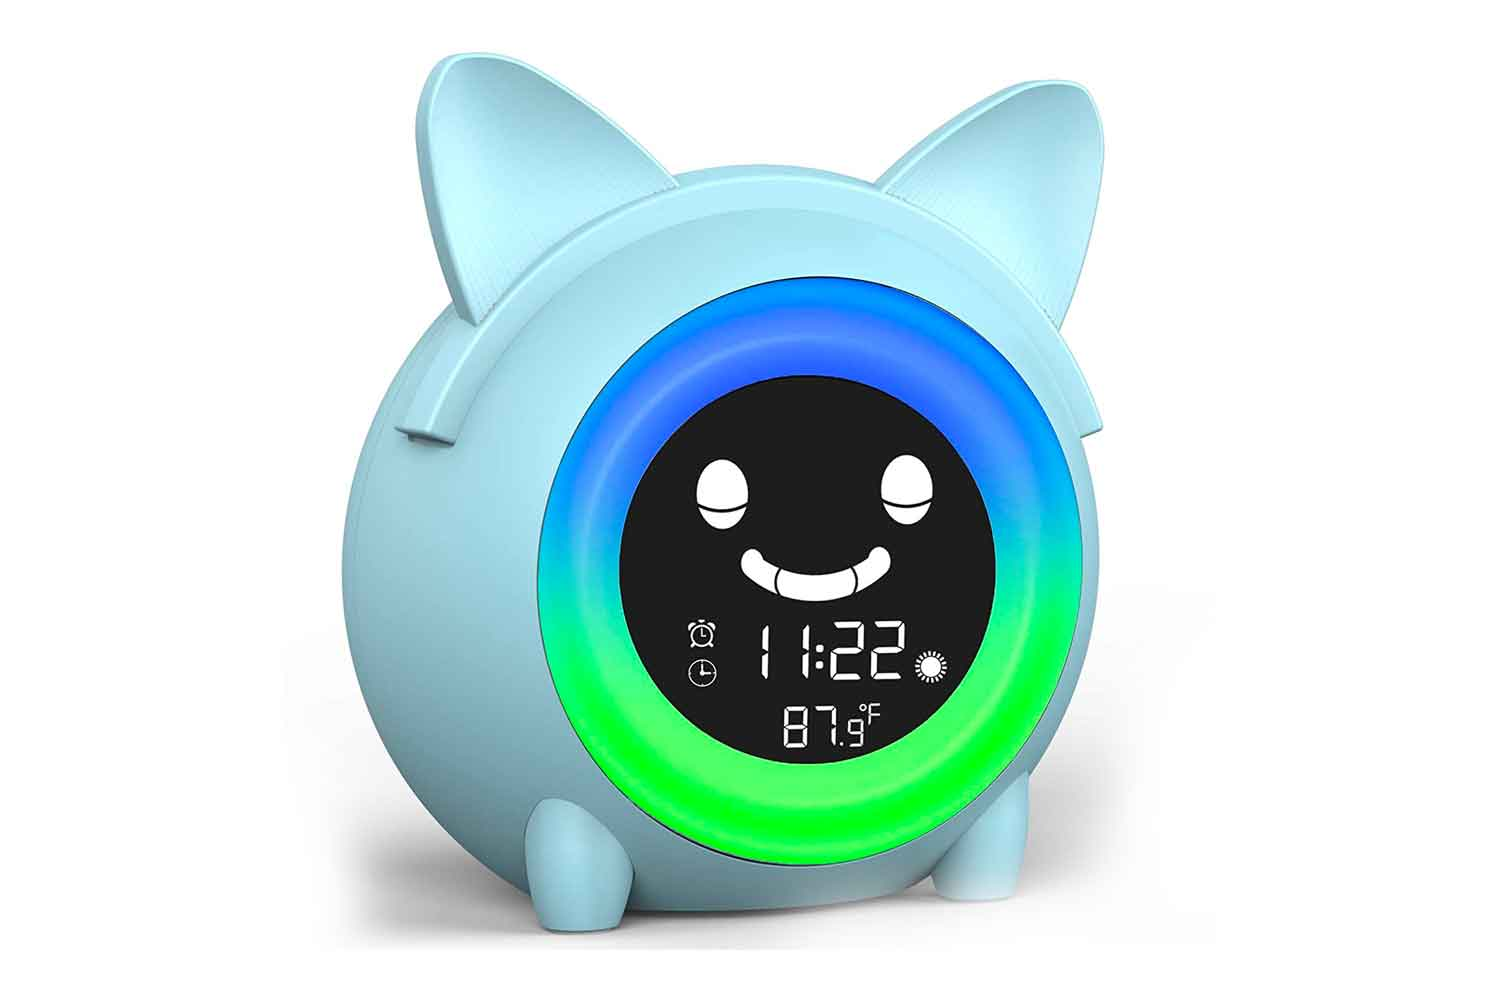 USAOSHOP Alarm Clock for Kids, Sleep Wake Up Clock for Toddlers, Children Sleep Trainer with 5 Color Night Light, NAP Timer, Cute Digital Kids Clock for Bedroom, Teach Boys Girls When Fine to Wake up